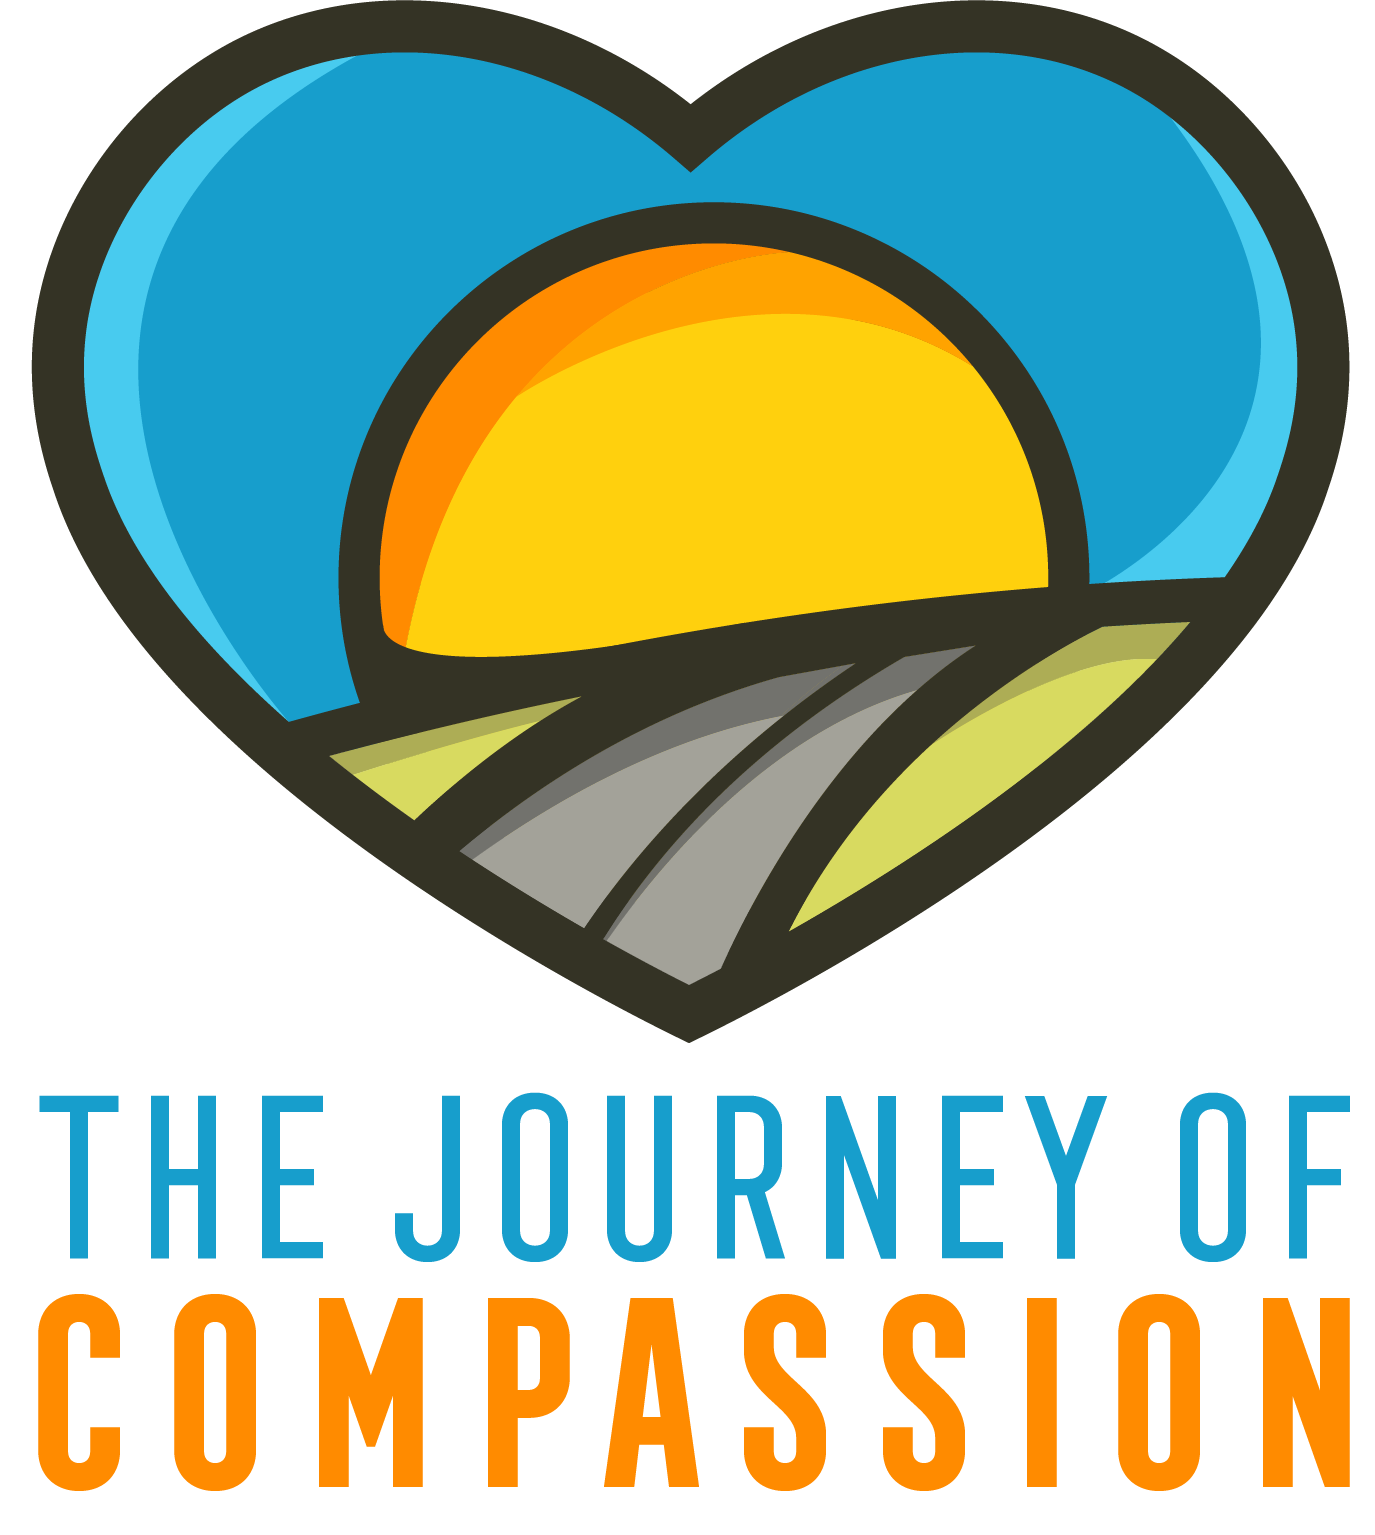 The Journey of Compassion